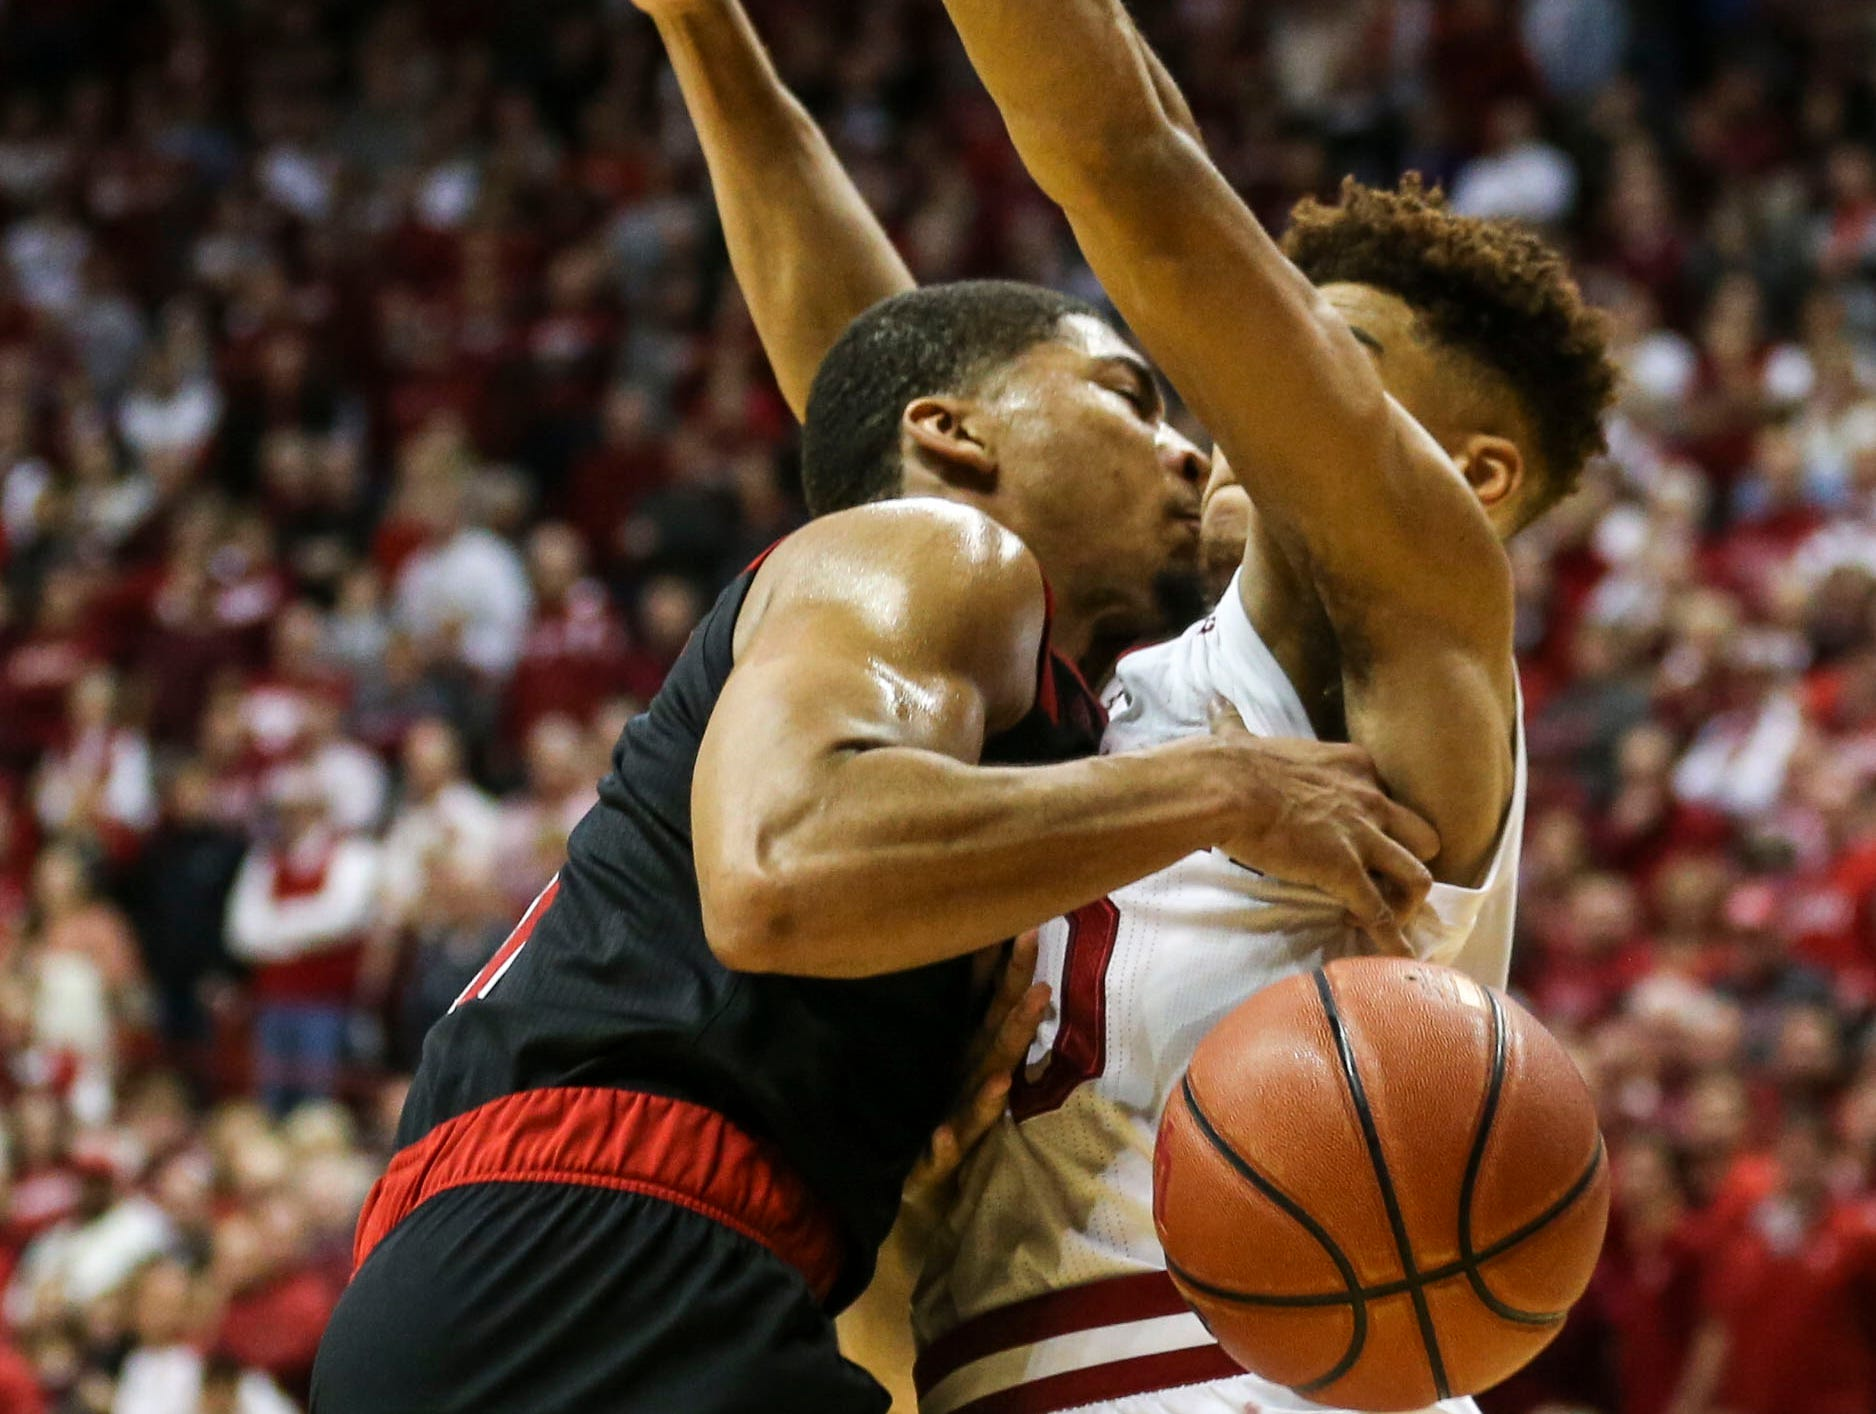 Louisville's Christen Cunningham drives against Indiana's Rob Phinisee Saturday, Dec. 8, 2018. Cunningham finished with 16 points Phinisee had 10 points.